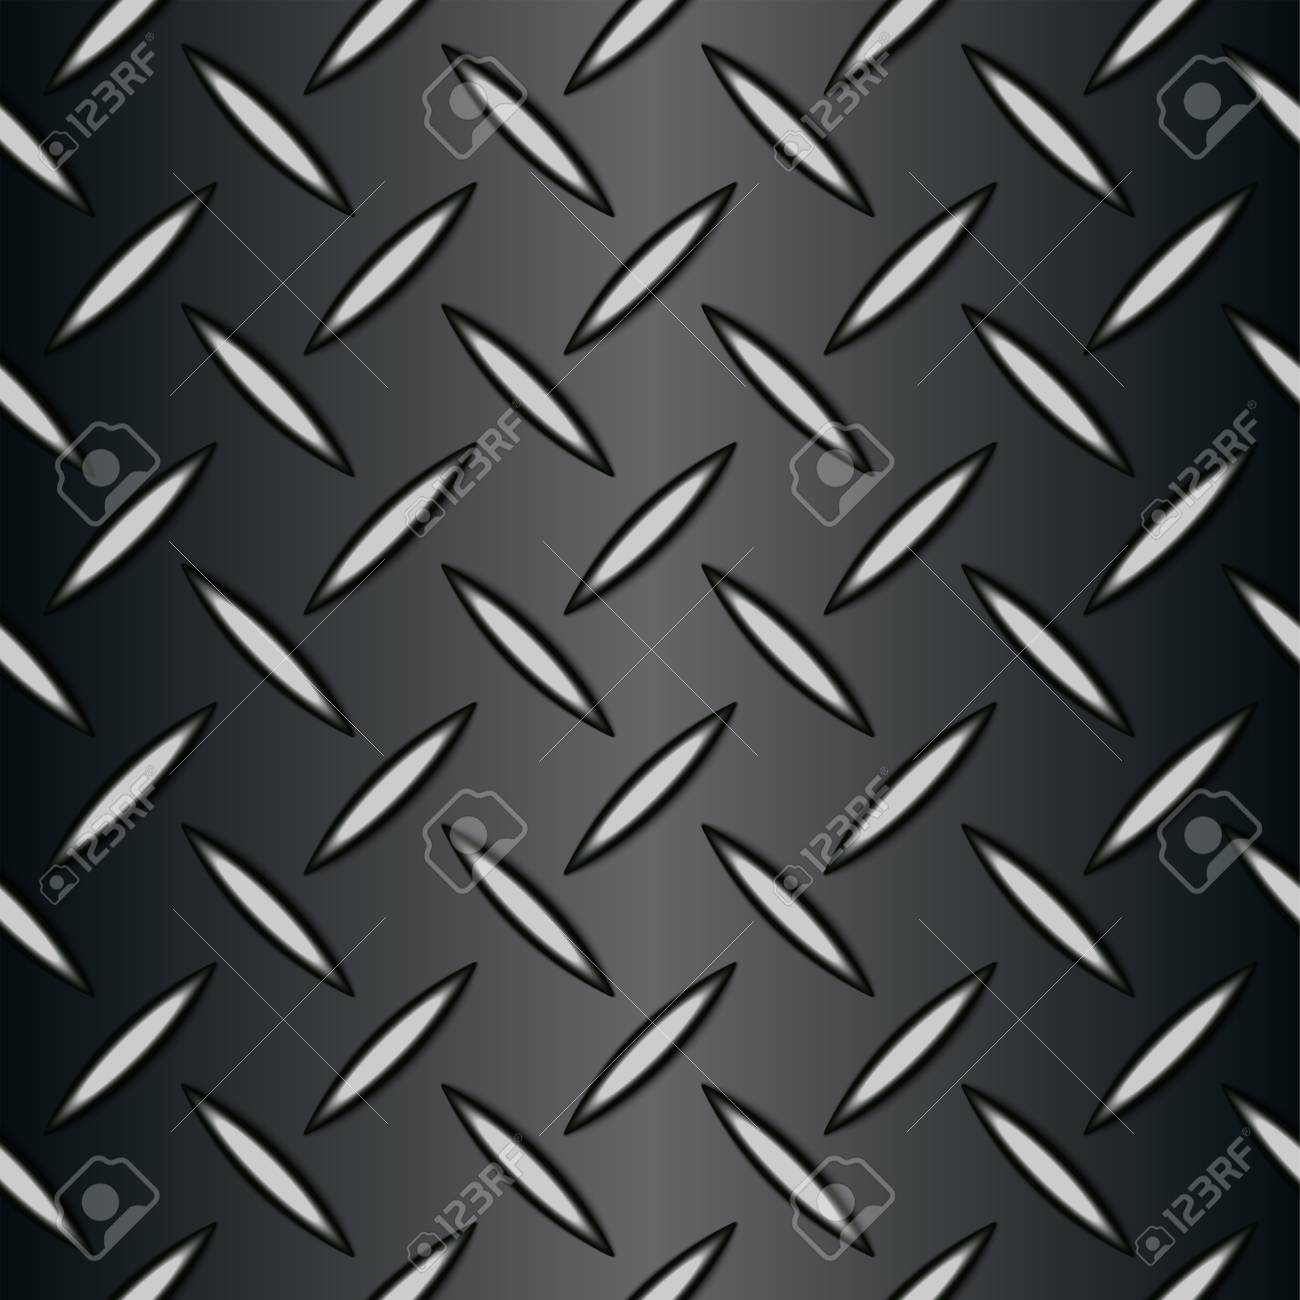 Black Diamond Plate Wallpaper Posted By Samantha Tremblay